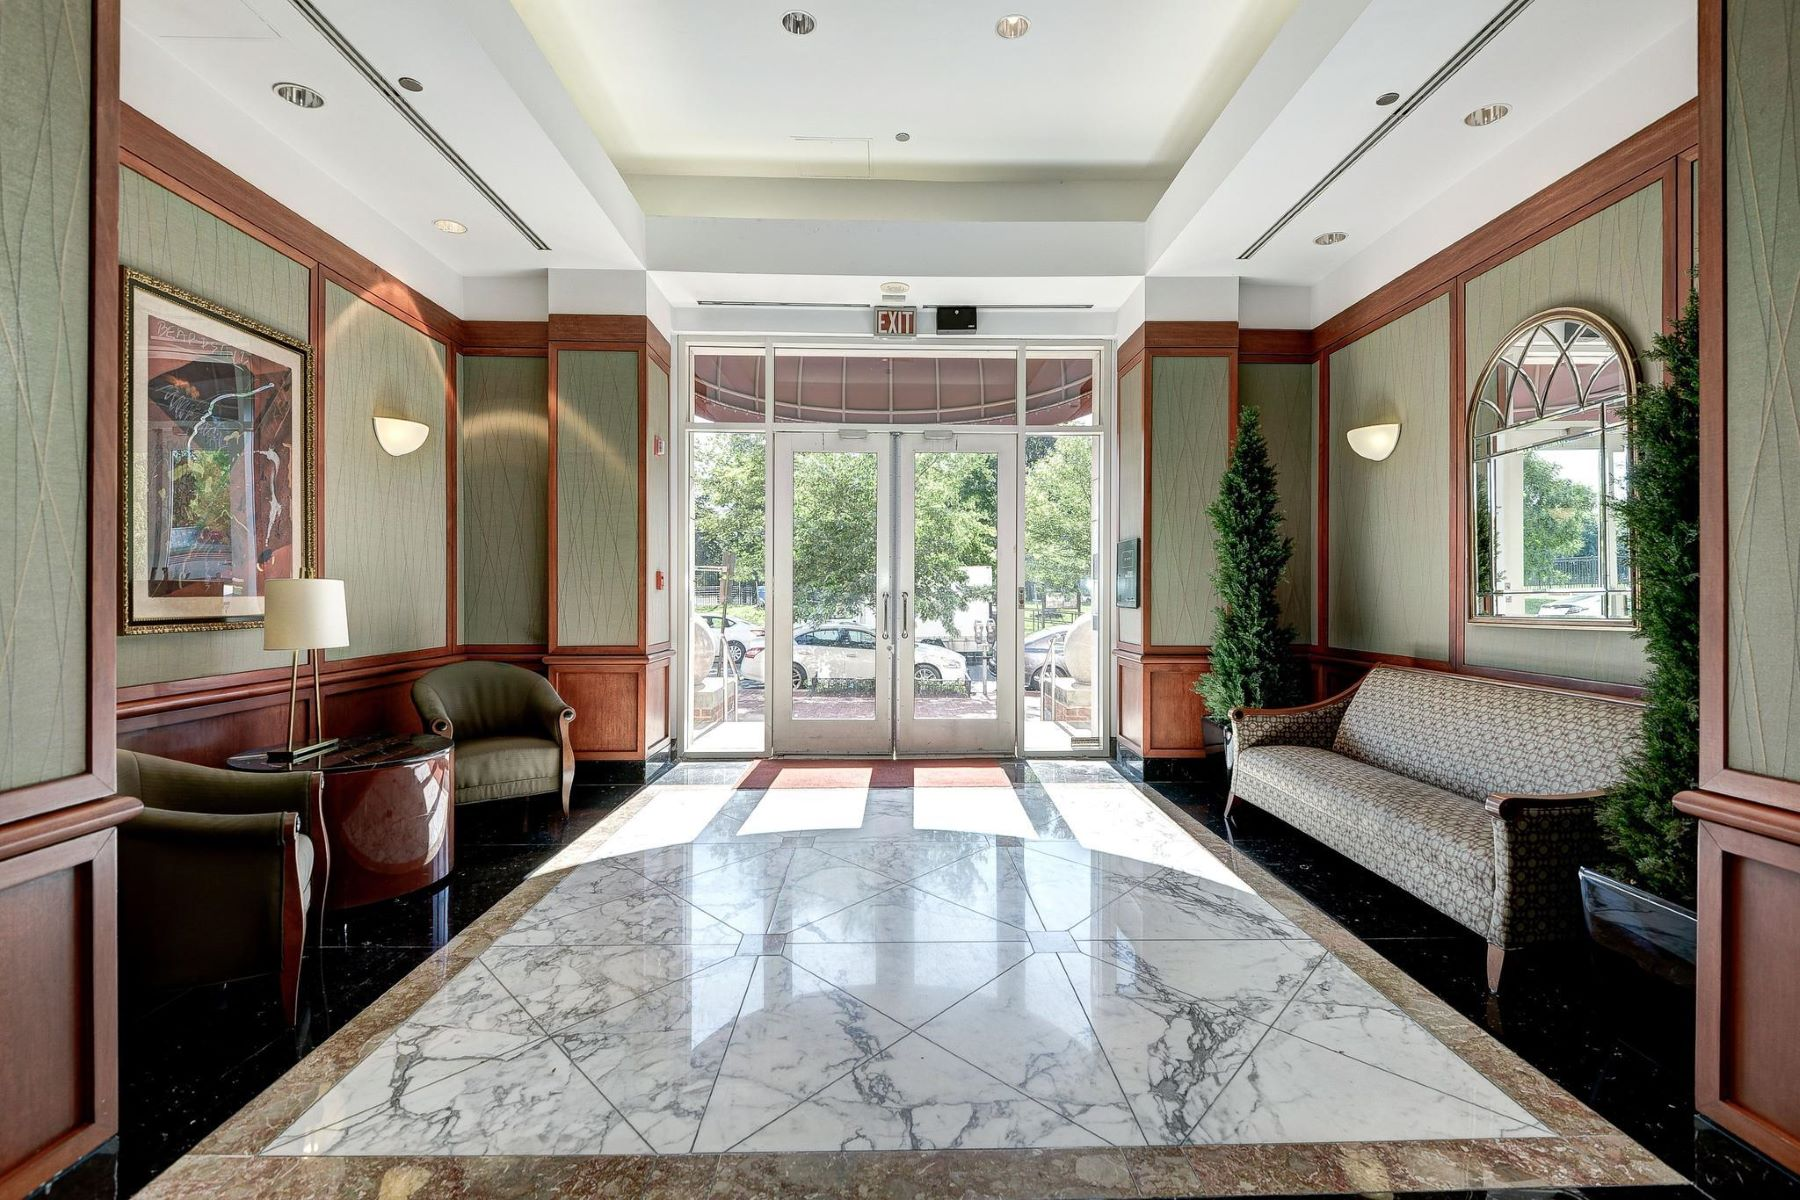 Condominium for Rent at 1275 25th St Nw #600 1275 25th St Nw #600 Washington, District Of Columbia 20037 United States